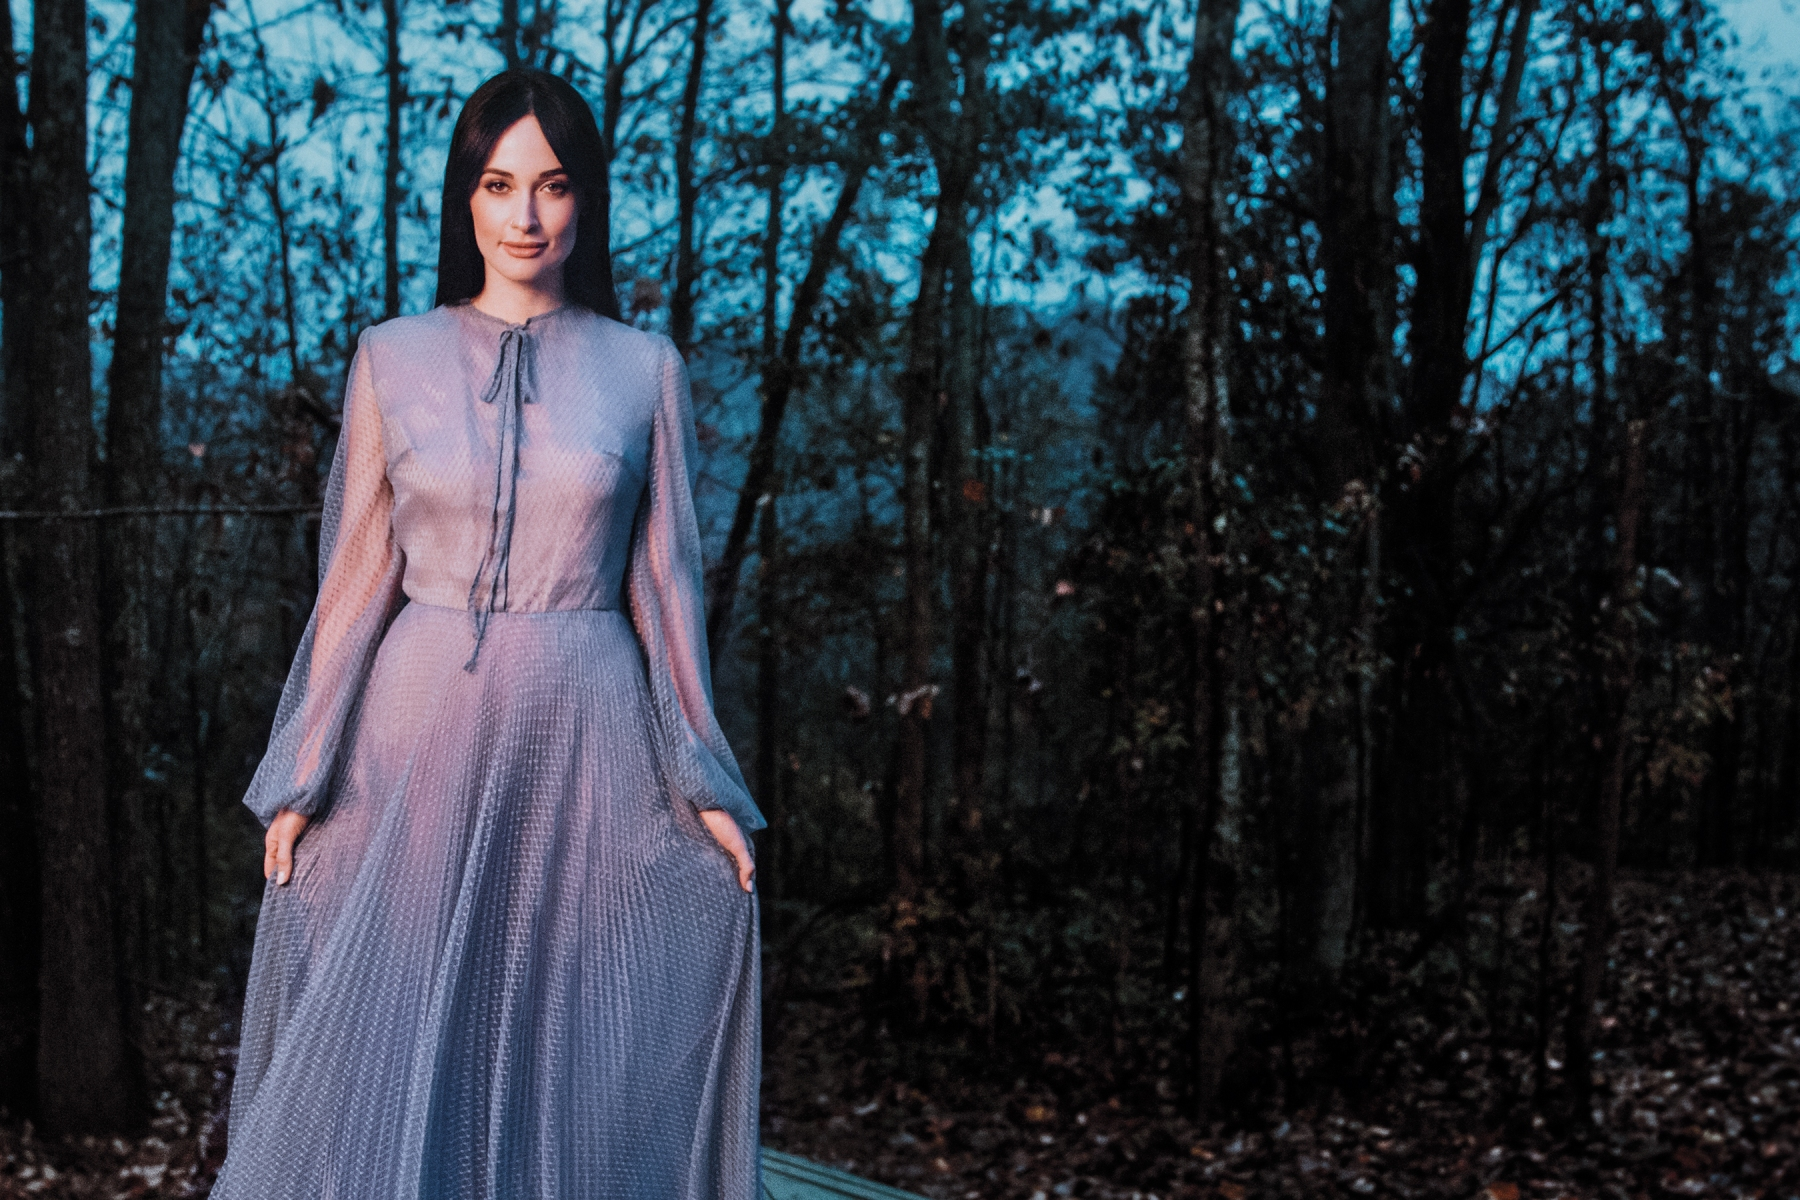 KACEY MUSGRAVES for Rolling Stone